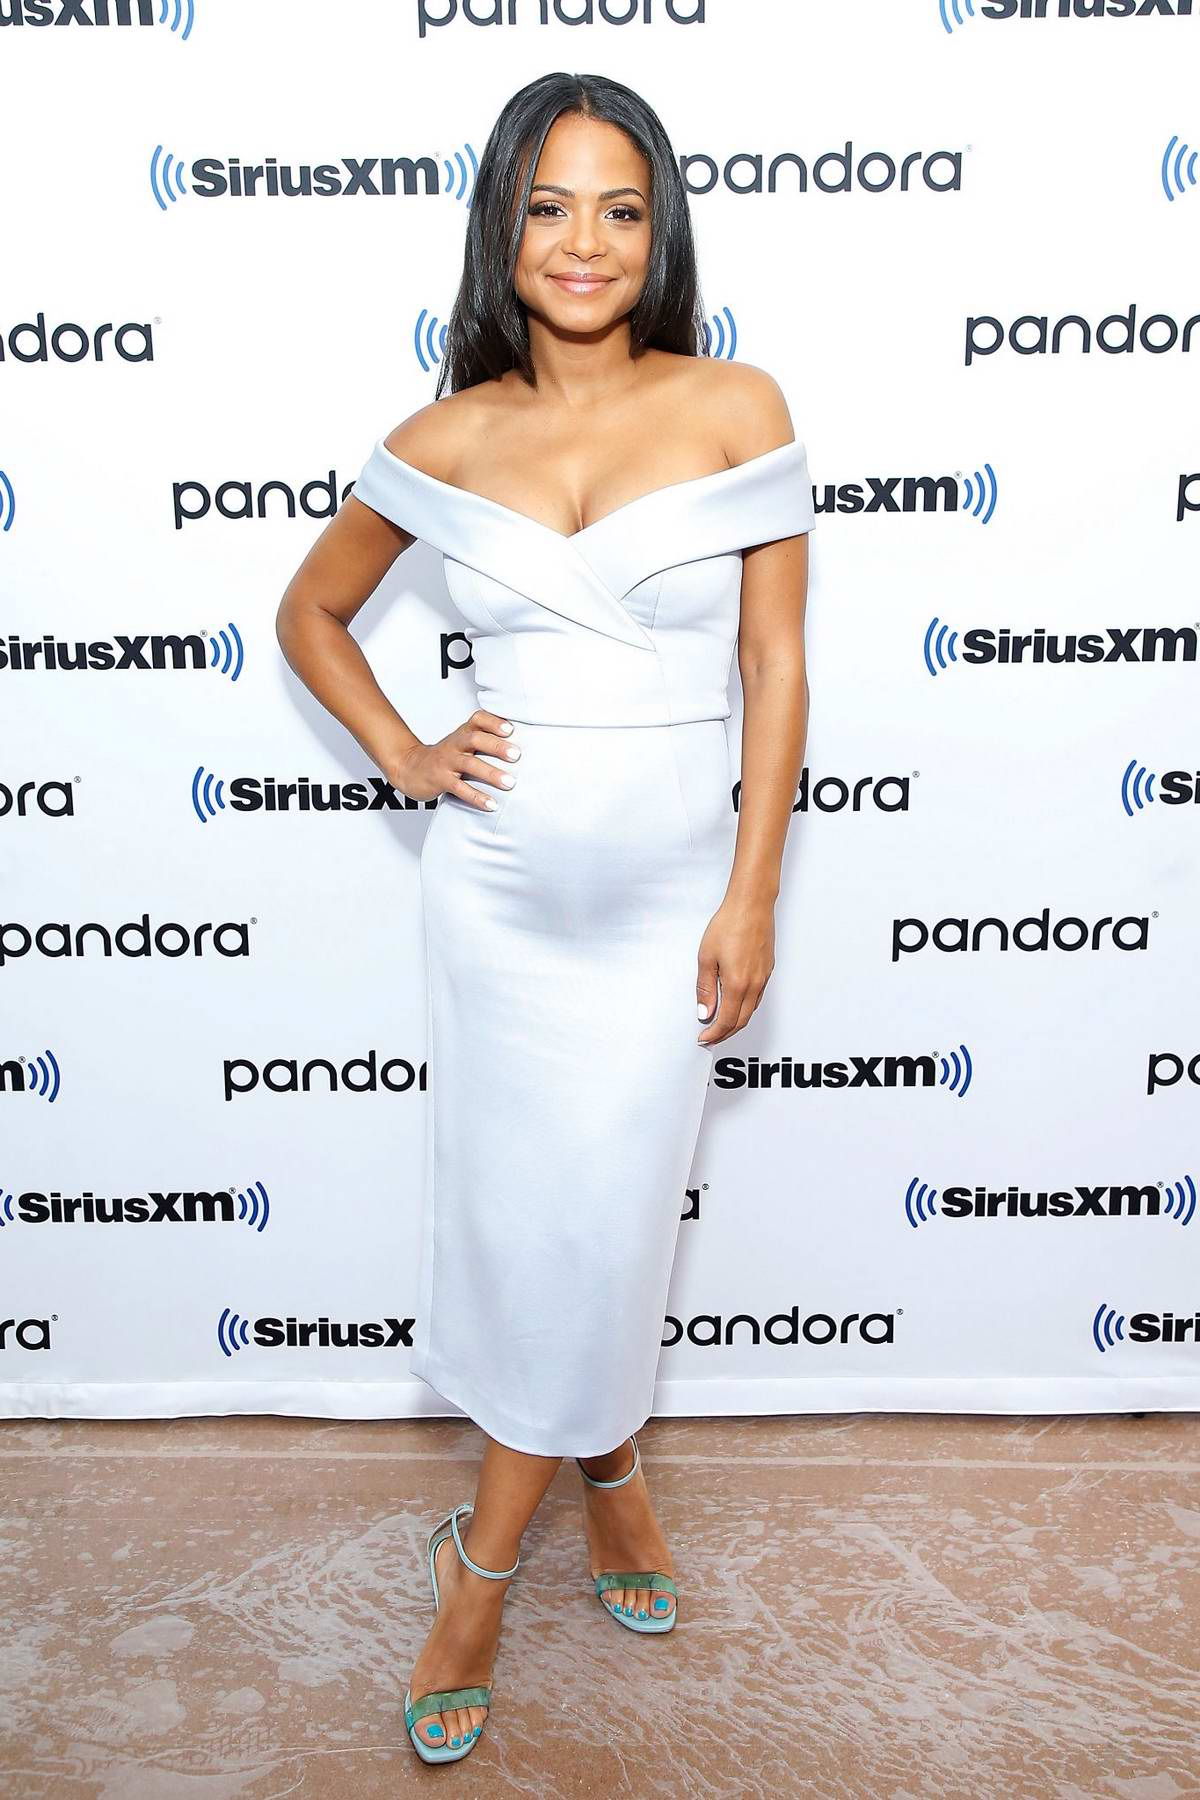 Christina Milian visits SiriusXM Studios in New York City